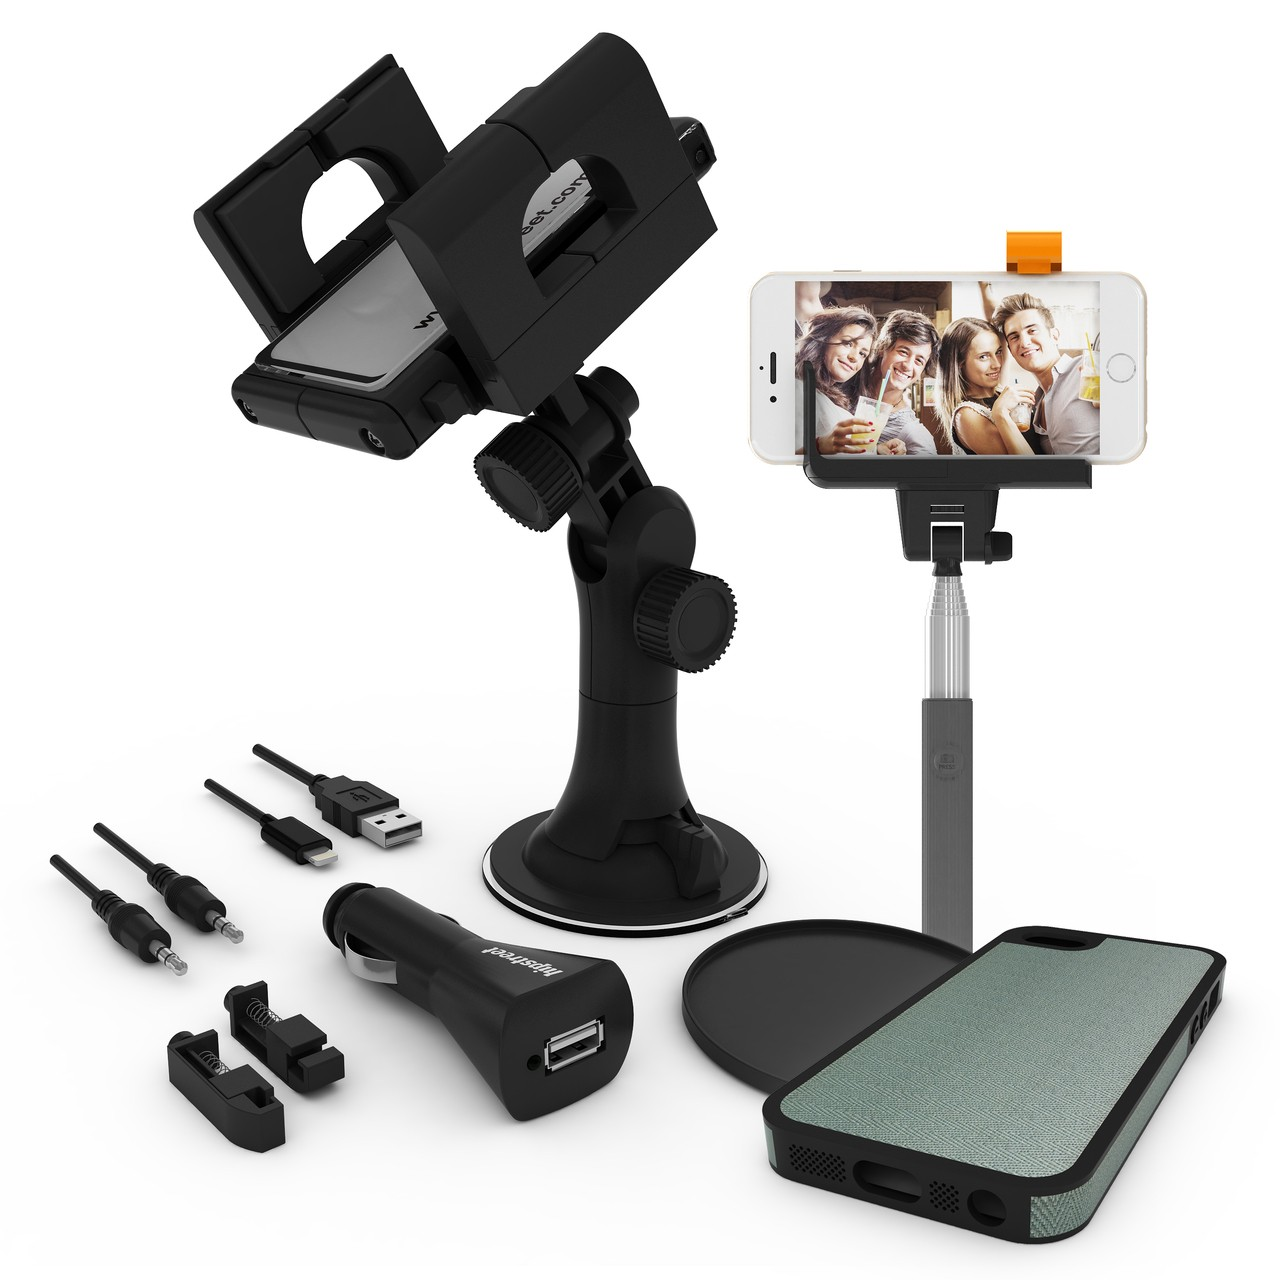 Hipstreet Bluetooth Selfie Camera Extension with iPhone® 5 Case and